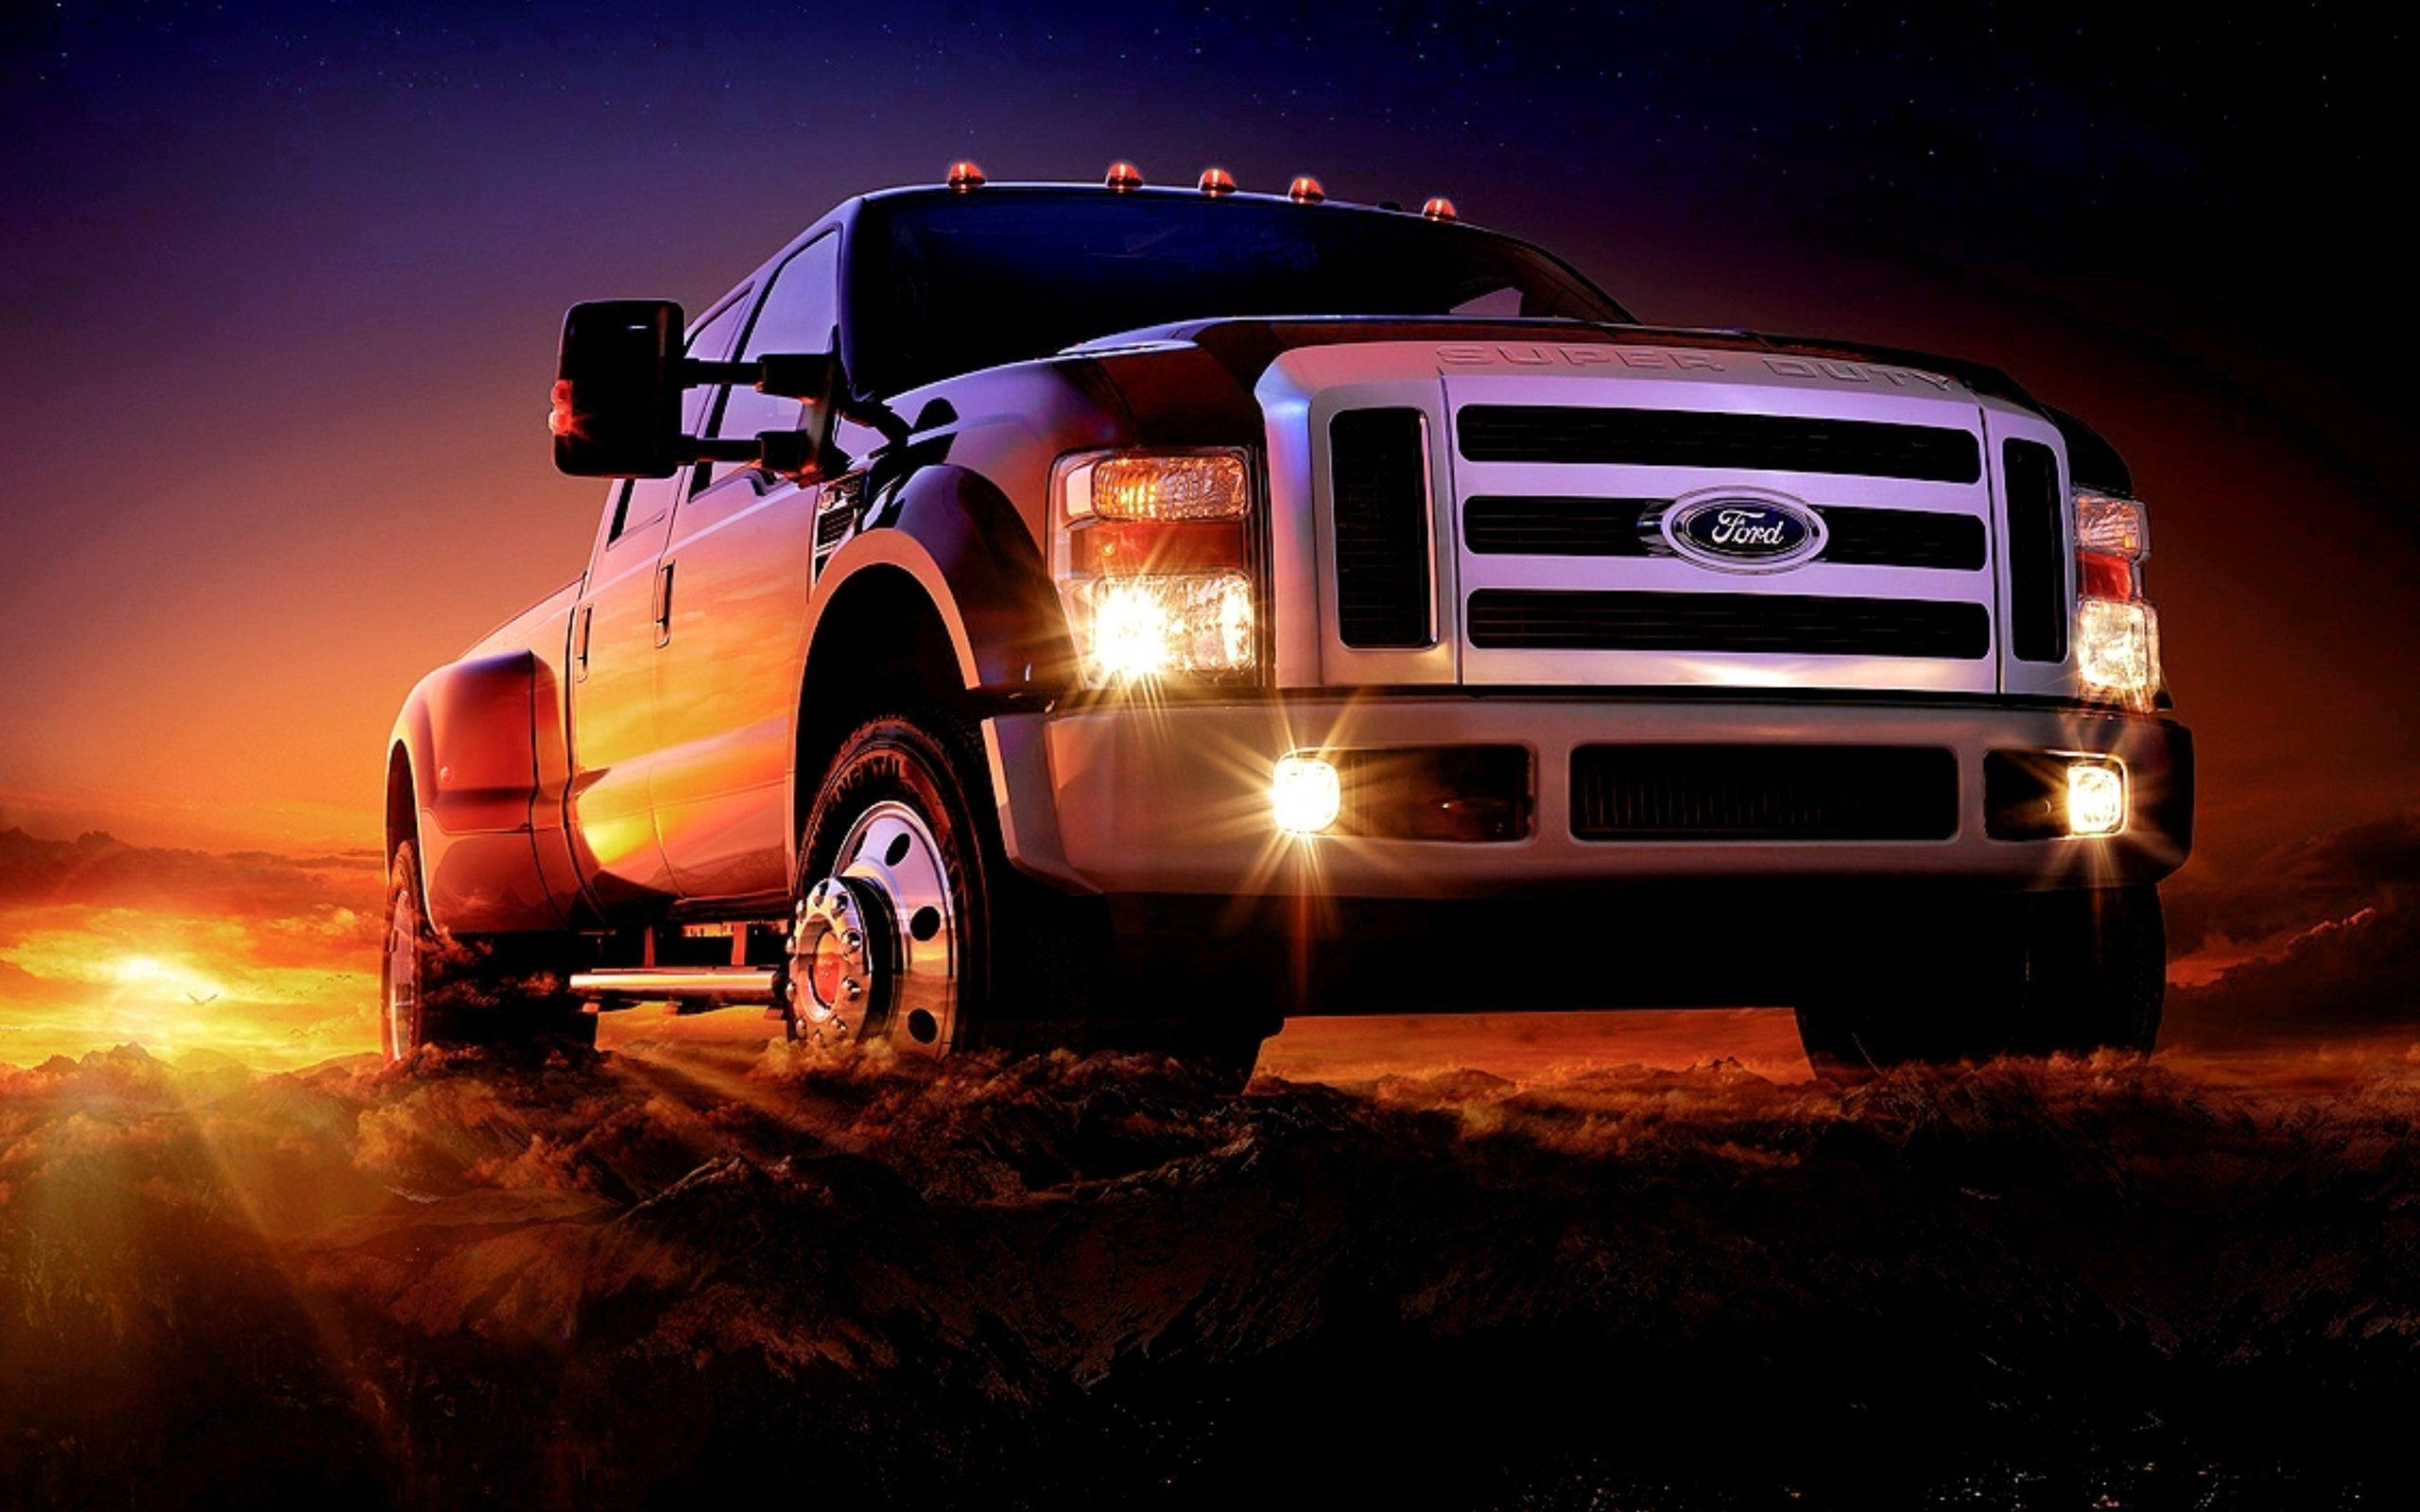 Ford Truck HD Wallpapers